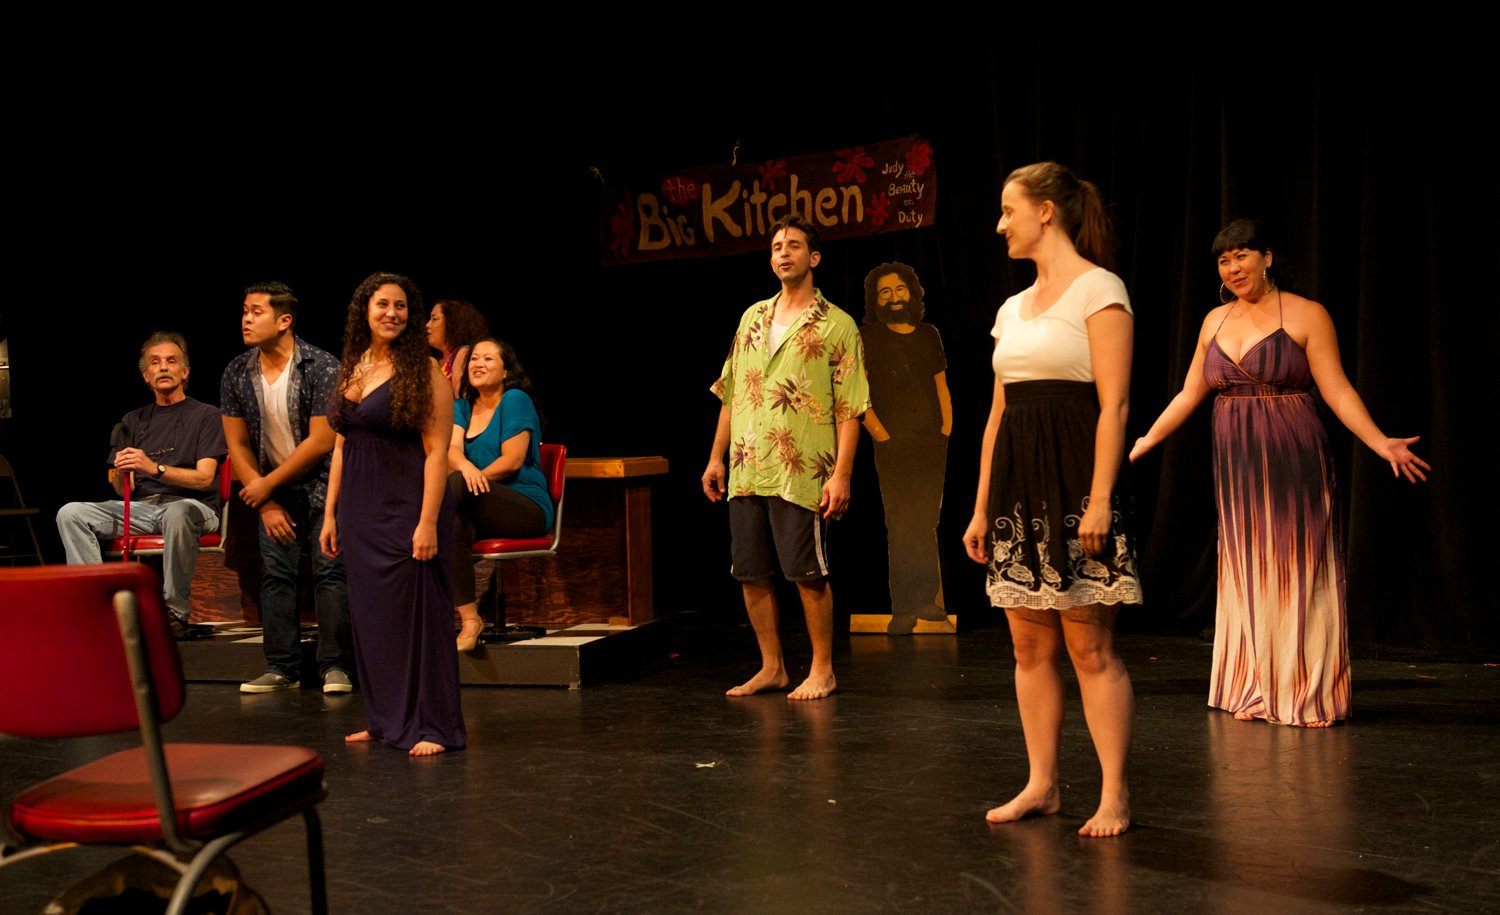 San Diego Fringe: Big Kitchen: A Counter Culture Musical ...